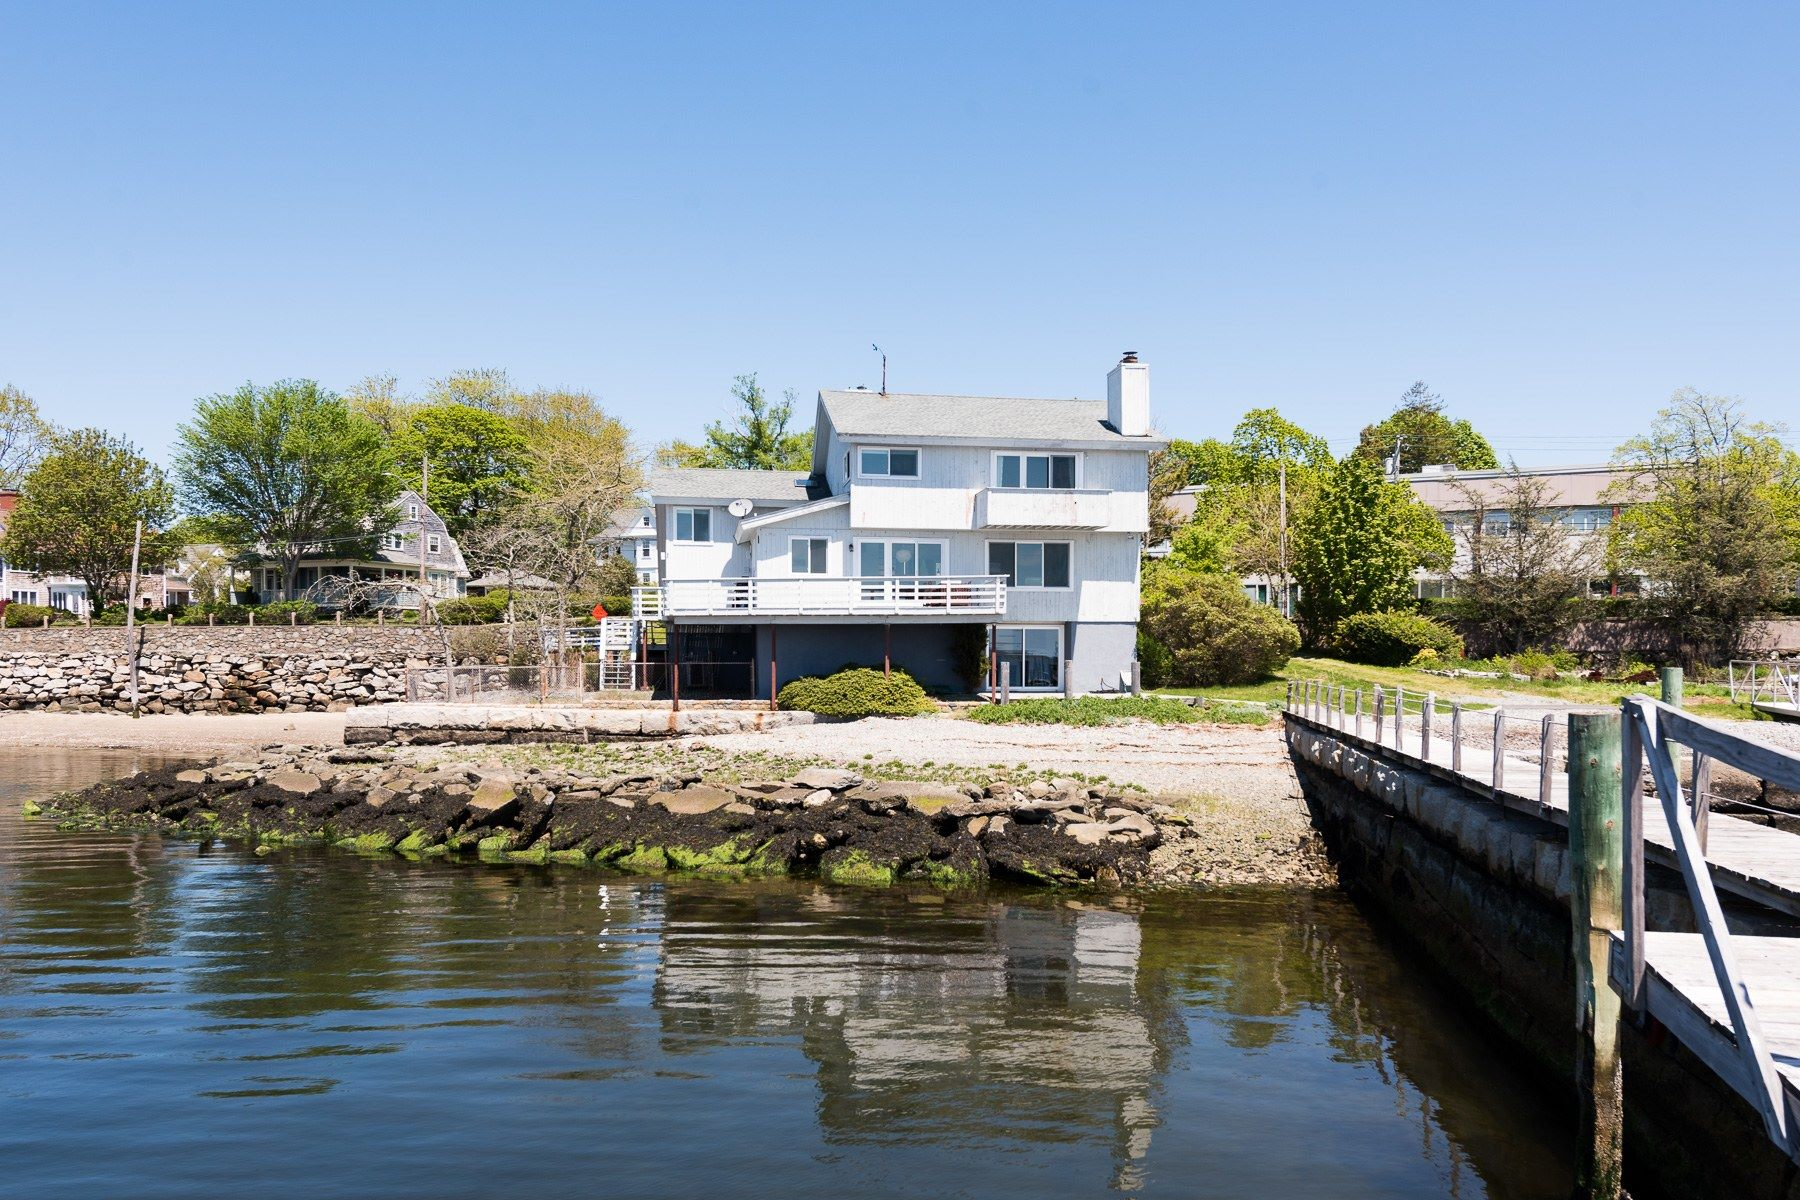 Single Family Homes for Sale at 169 Hope Street, Bristol, RI 169 Hope Street Bristol, Rhode Island 02809 United States